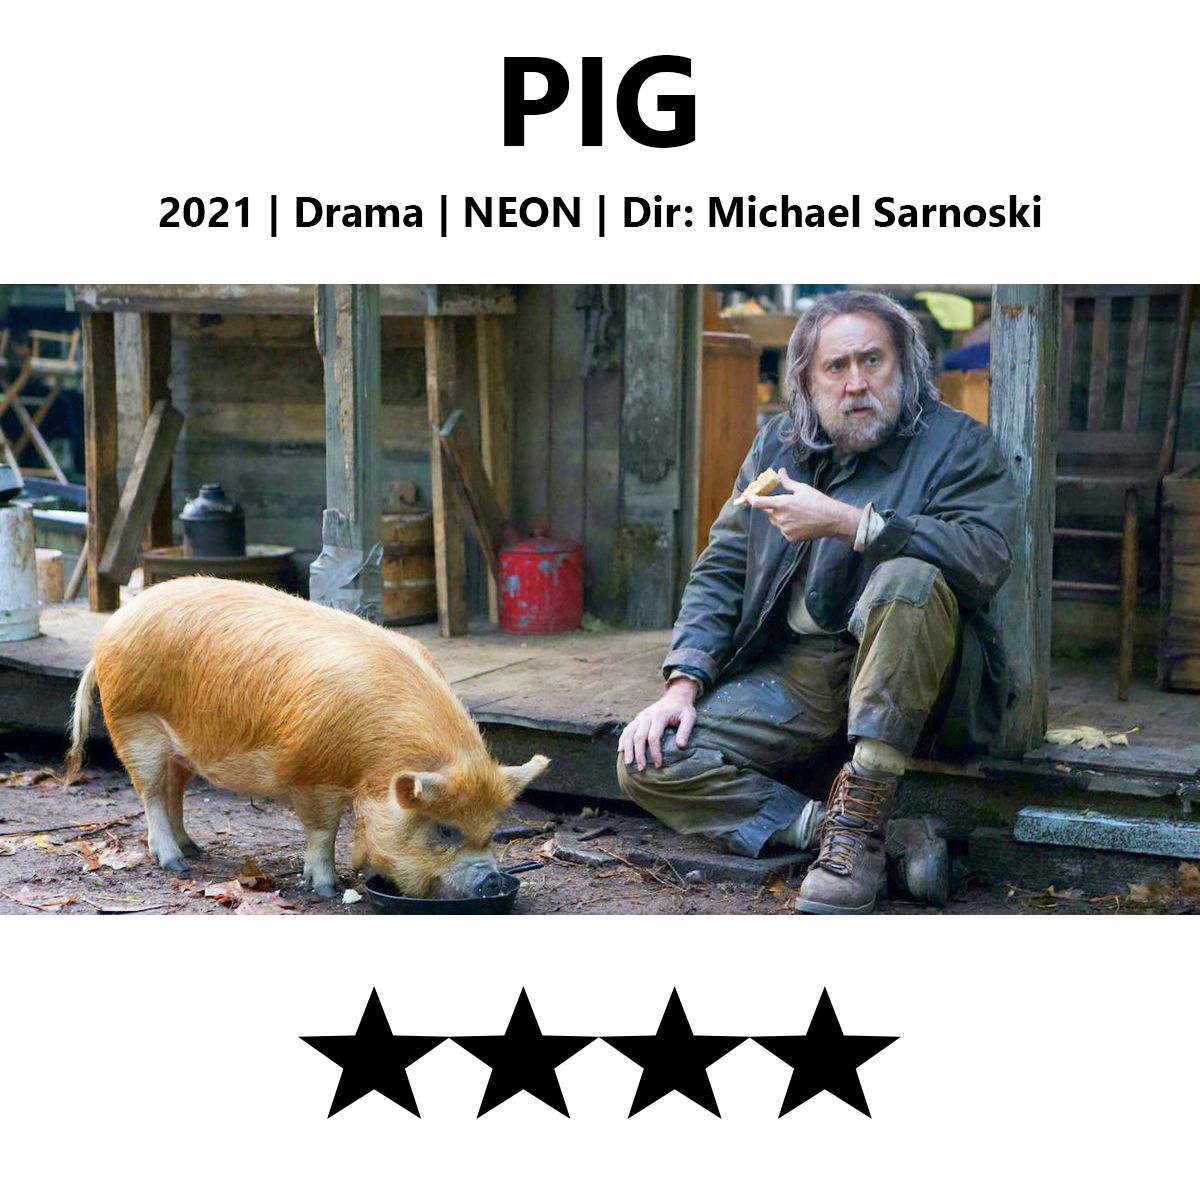 PIG 2021 Poster